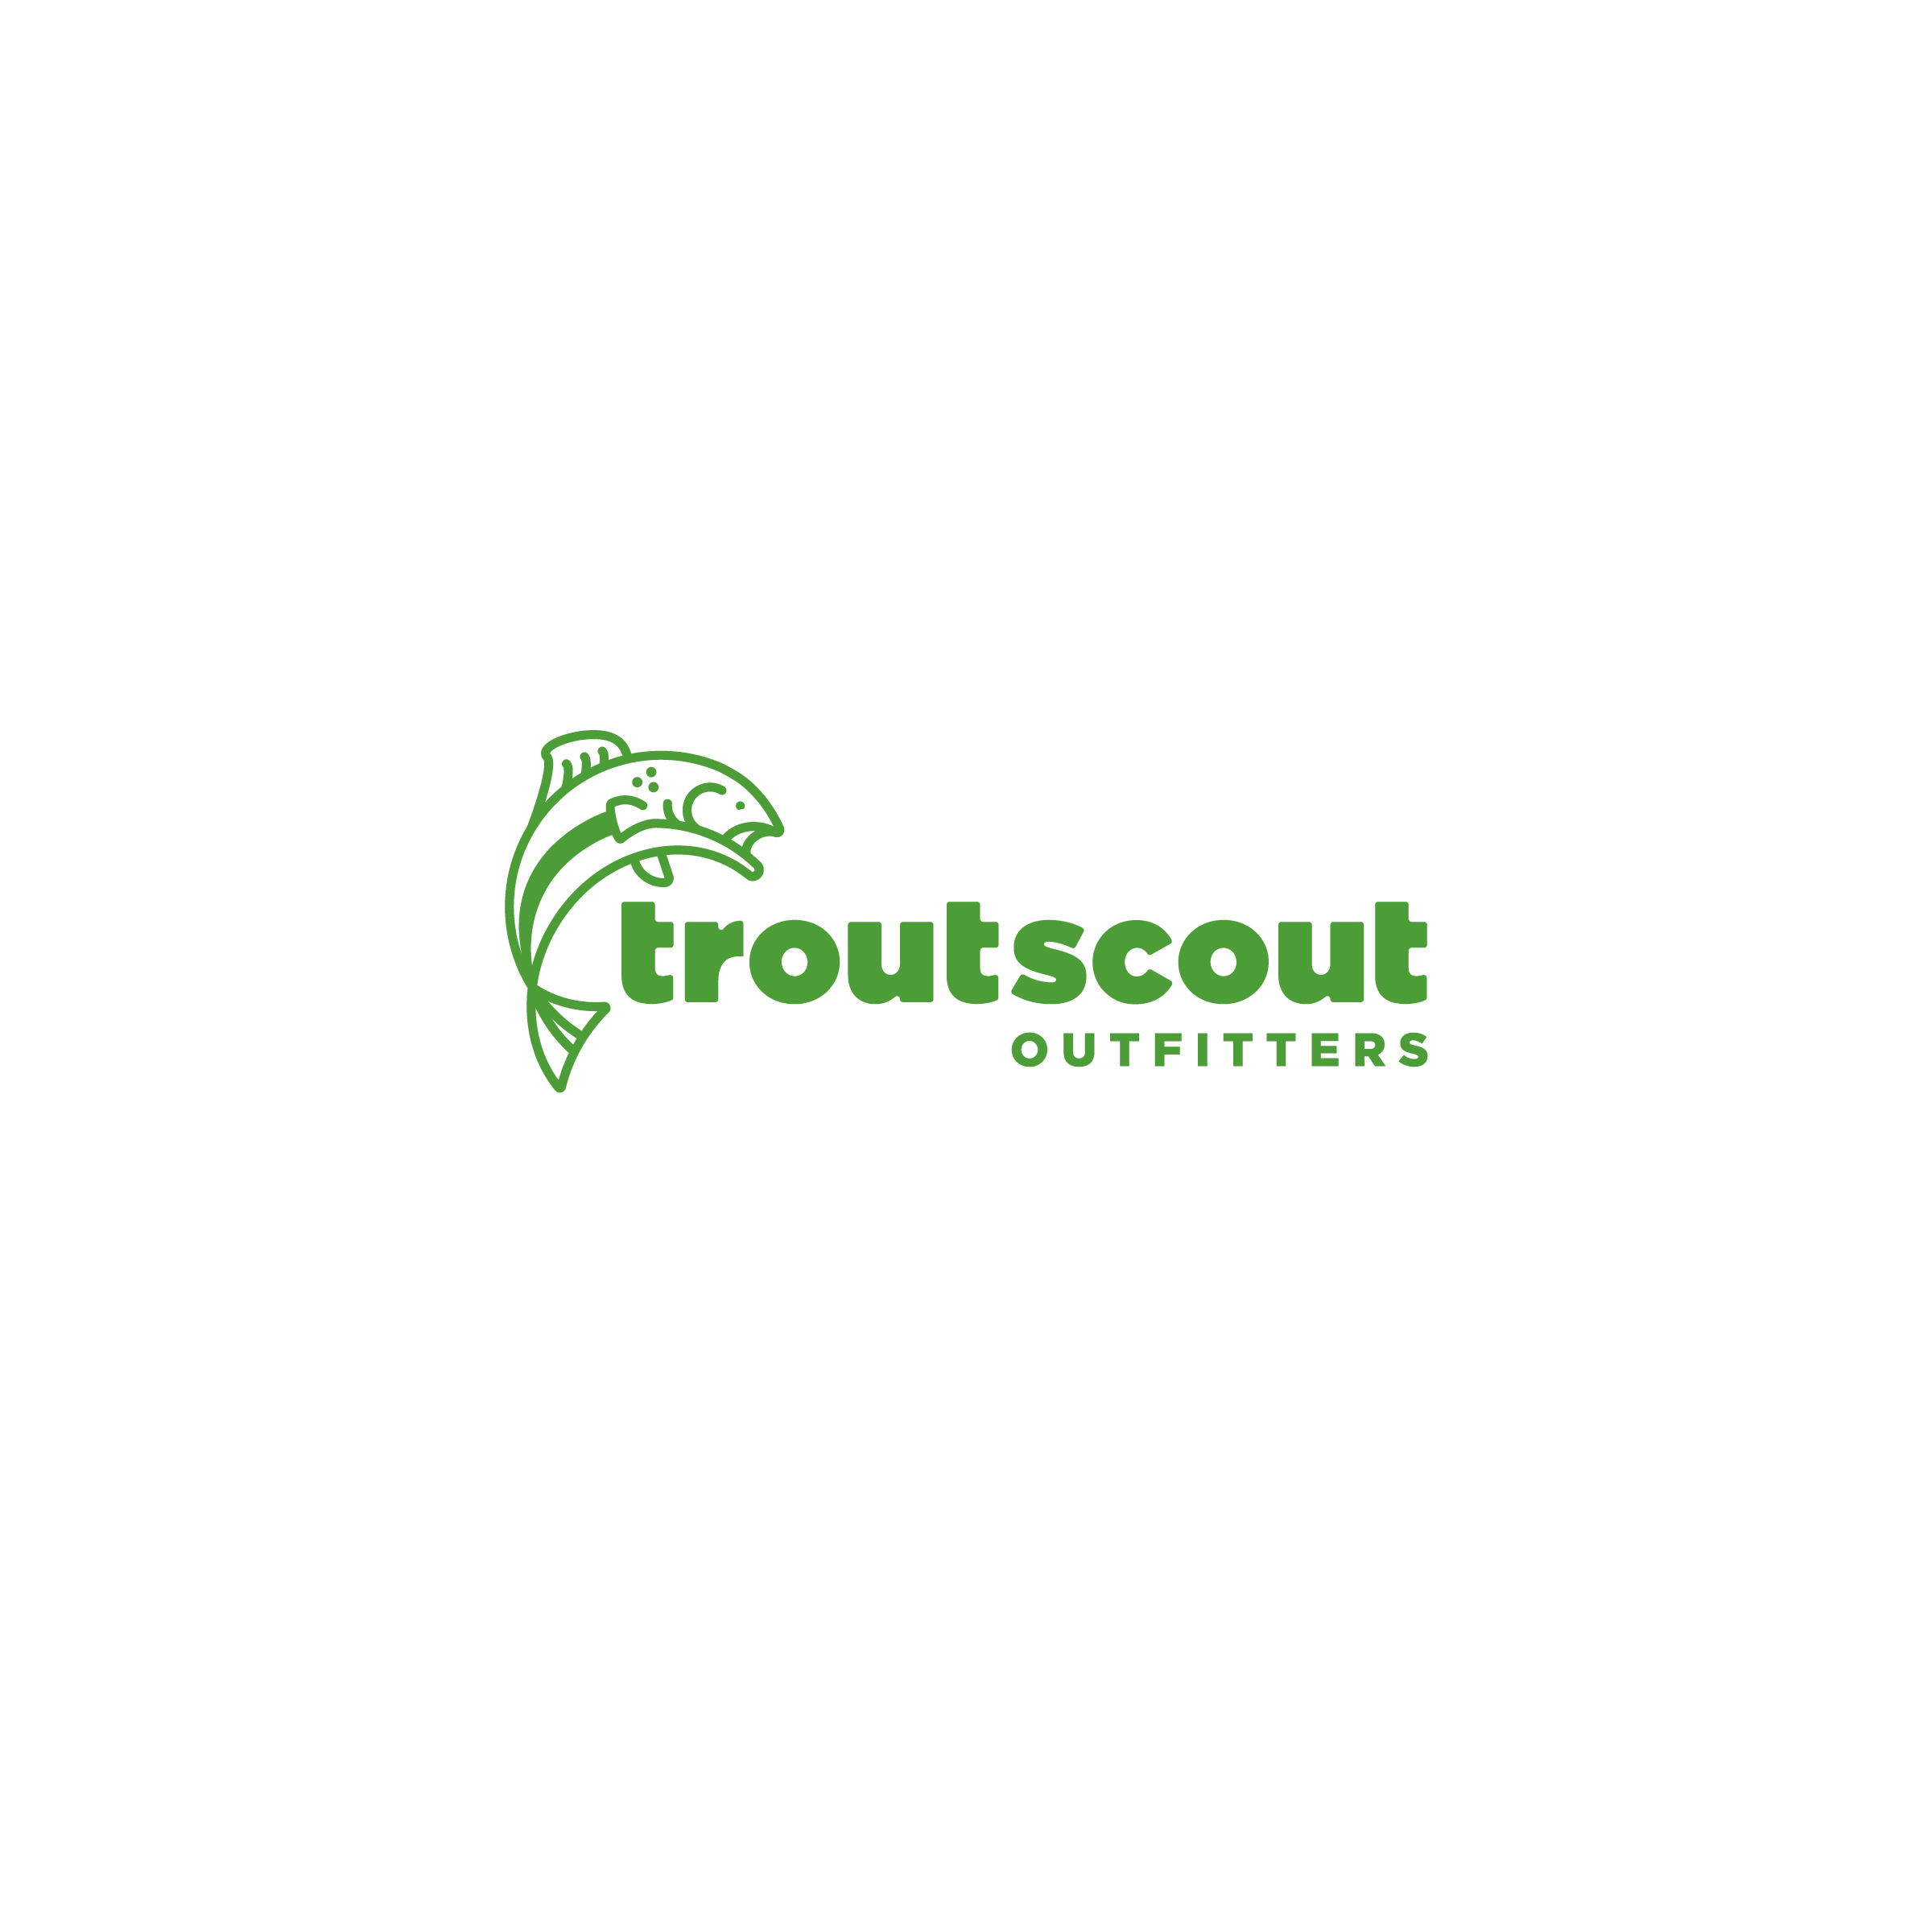 TroutScoutOutfitters_Green_Hrzt.jpg